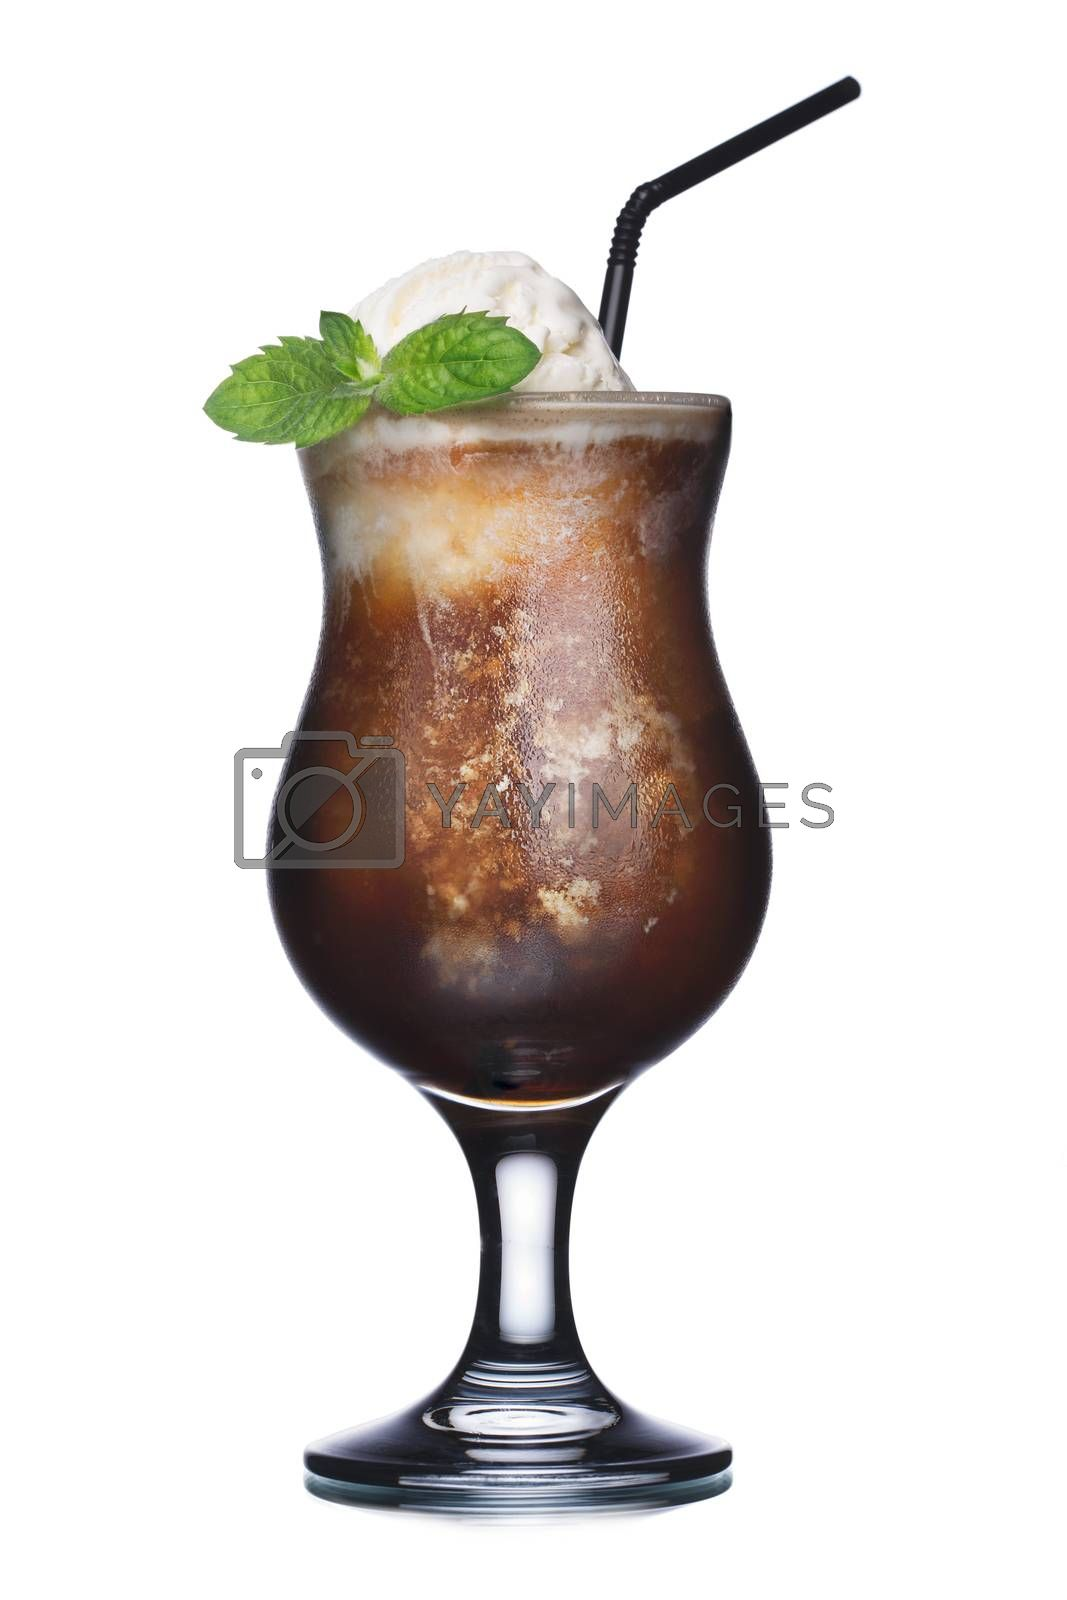 Royalty free image of Alcoholic cocktail by maxsol